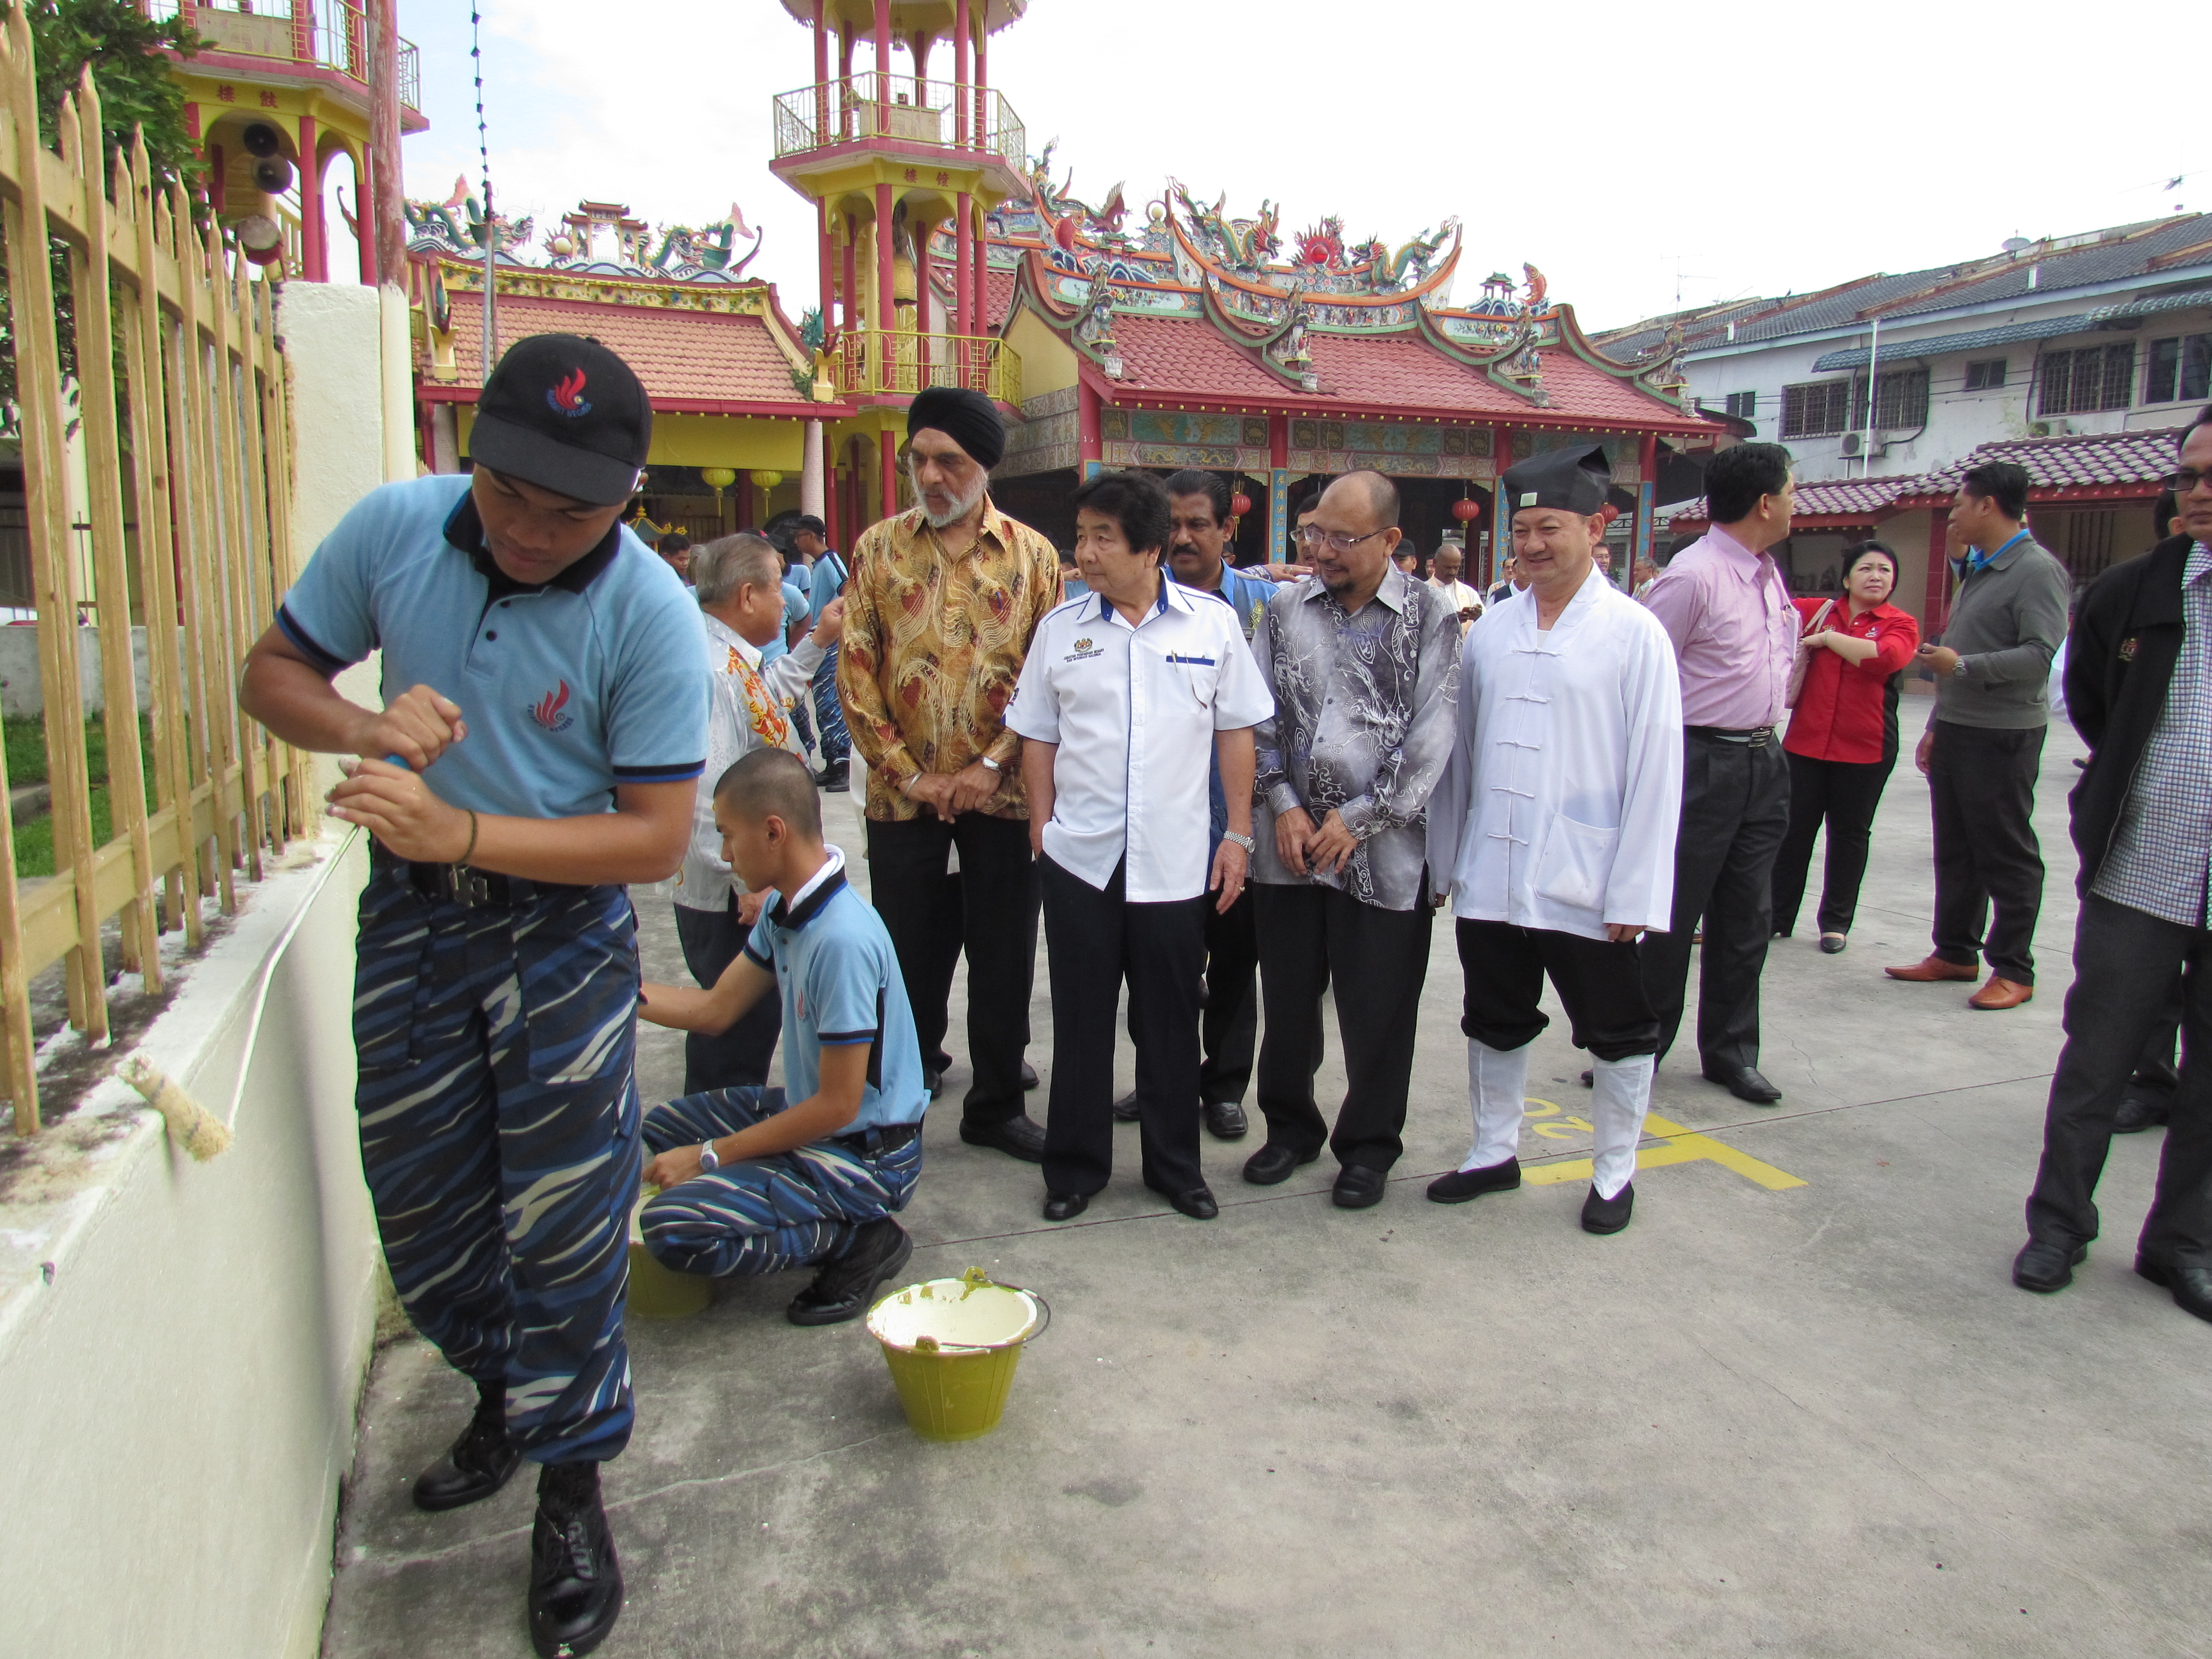 JKMPKA members and Minister Tan Sri Joseph Kurup with Youth Volunteers of various races and religion painting wall of Hong San Si temple at WIHW 2015 program in Klang.JPG